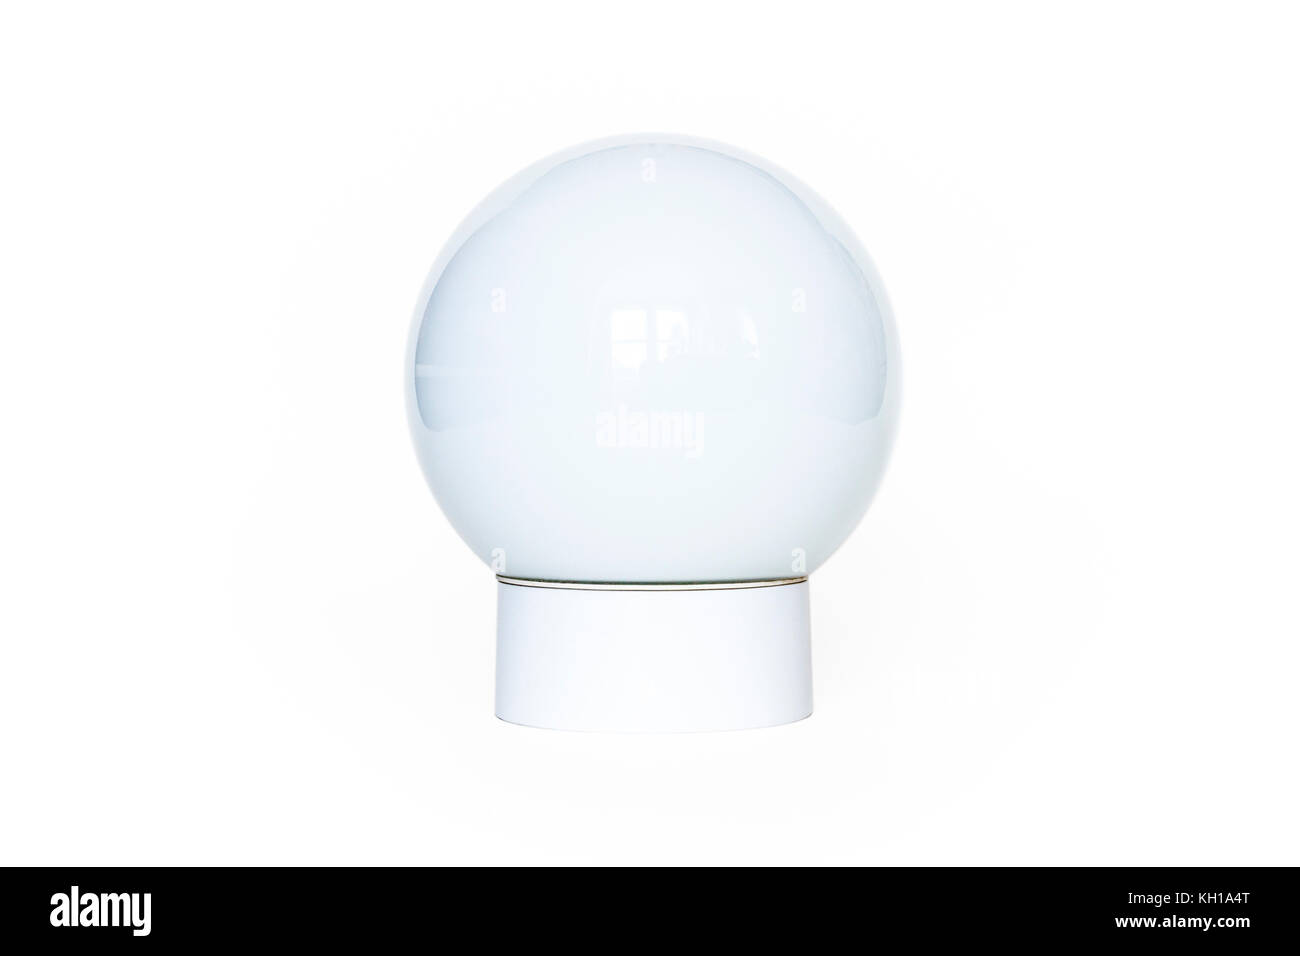 A white opalescent spherical ceiling lamp against a white background - Stock Image